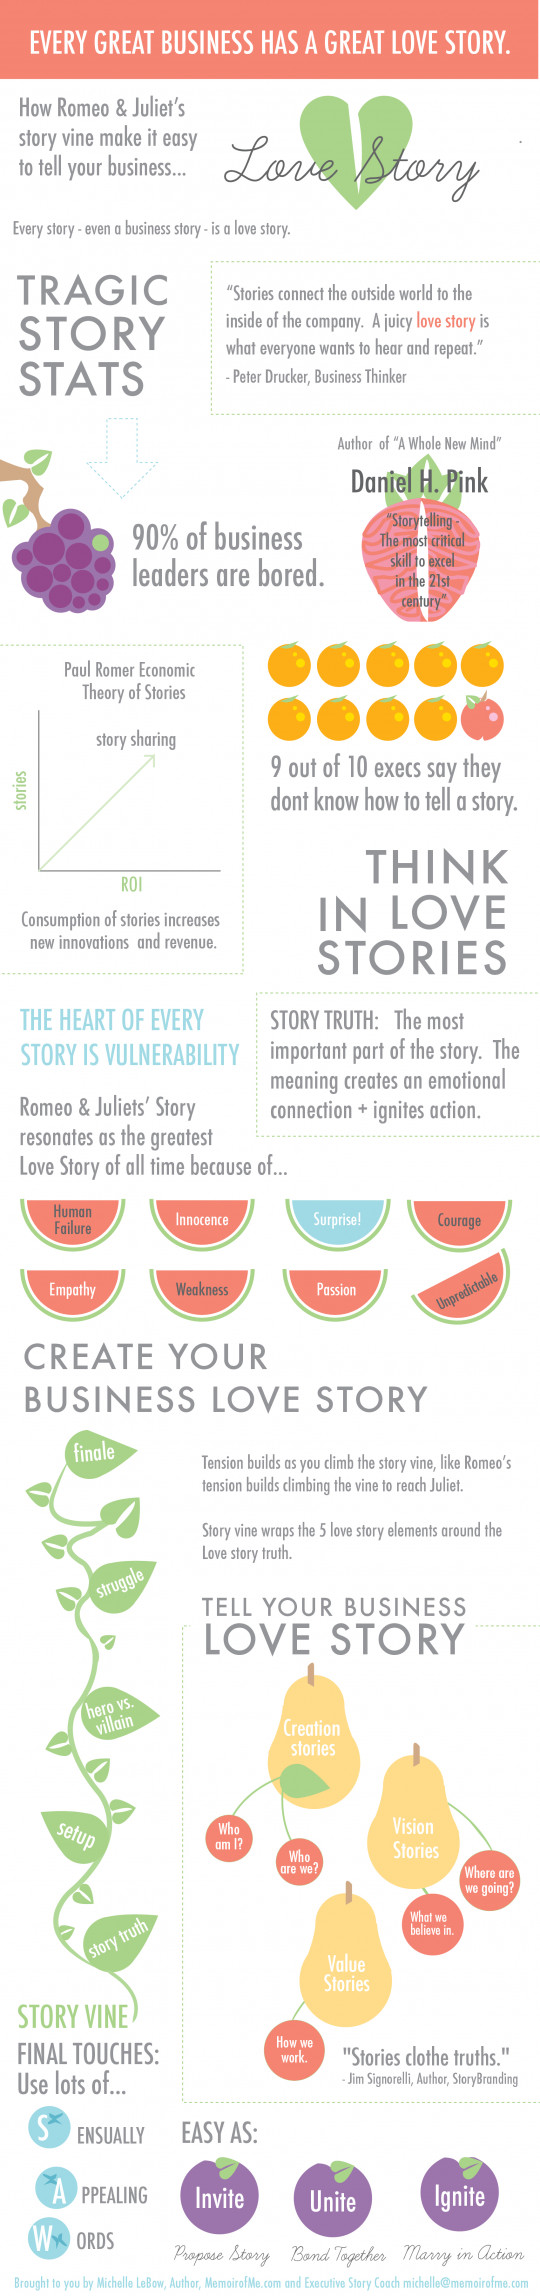 Behind every great business is a great love story. How Romeo and Juliet story vine make it easy to tell your business love story.